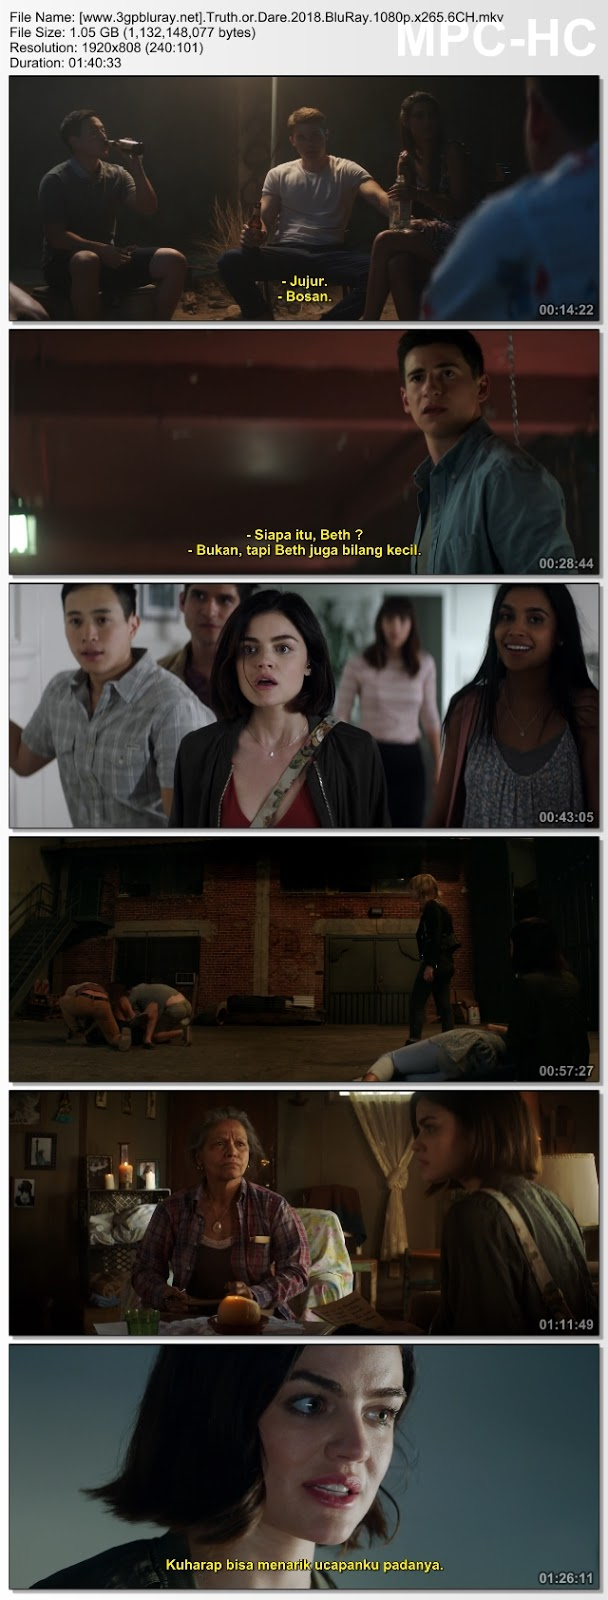 Screenshots Download Film Gratis Hardsub Indo Blumhouse's Truth or Dare (2018) BluRay 480p MP4 Subtitle Bahasa Indonesia 3GP